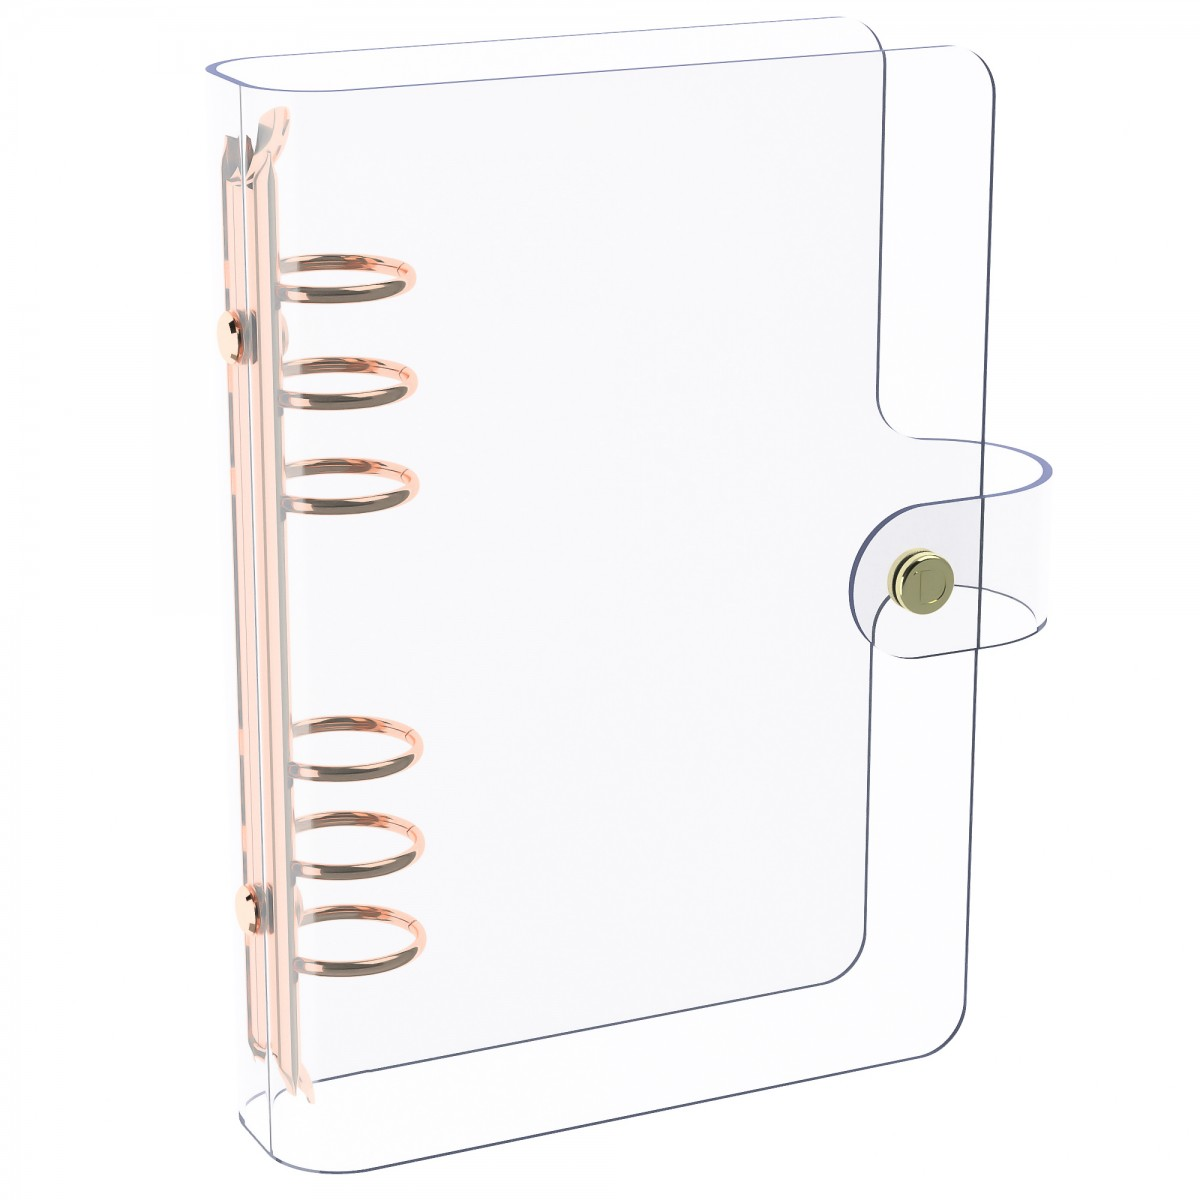 DISCAGENDA CLARITY CLEAR SEE THROUGH PVC PLANNER COVER - RINGBOUND, PERSONAL SIZE, ROSE GOLD